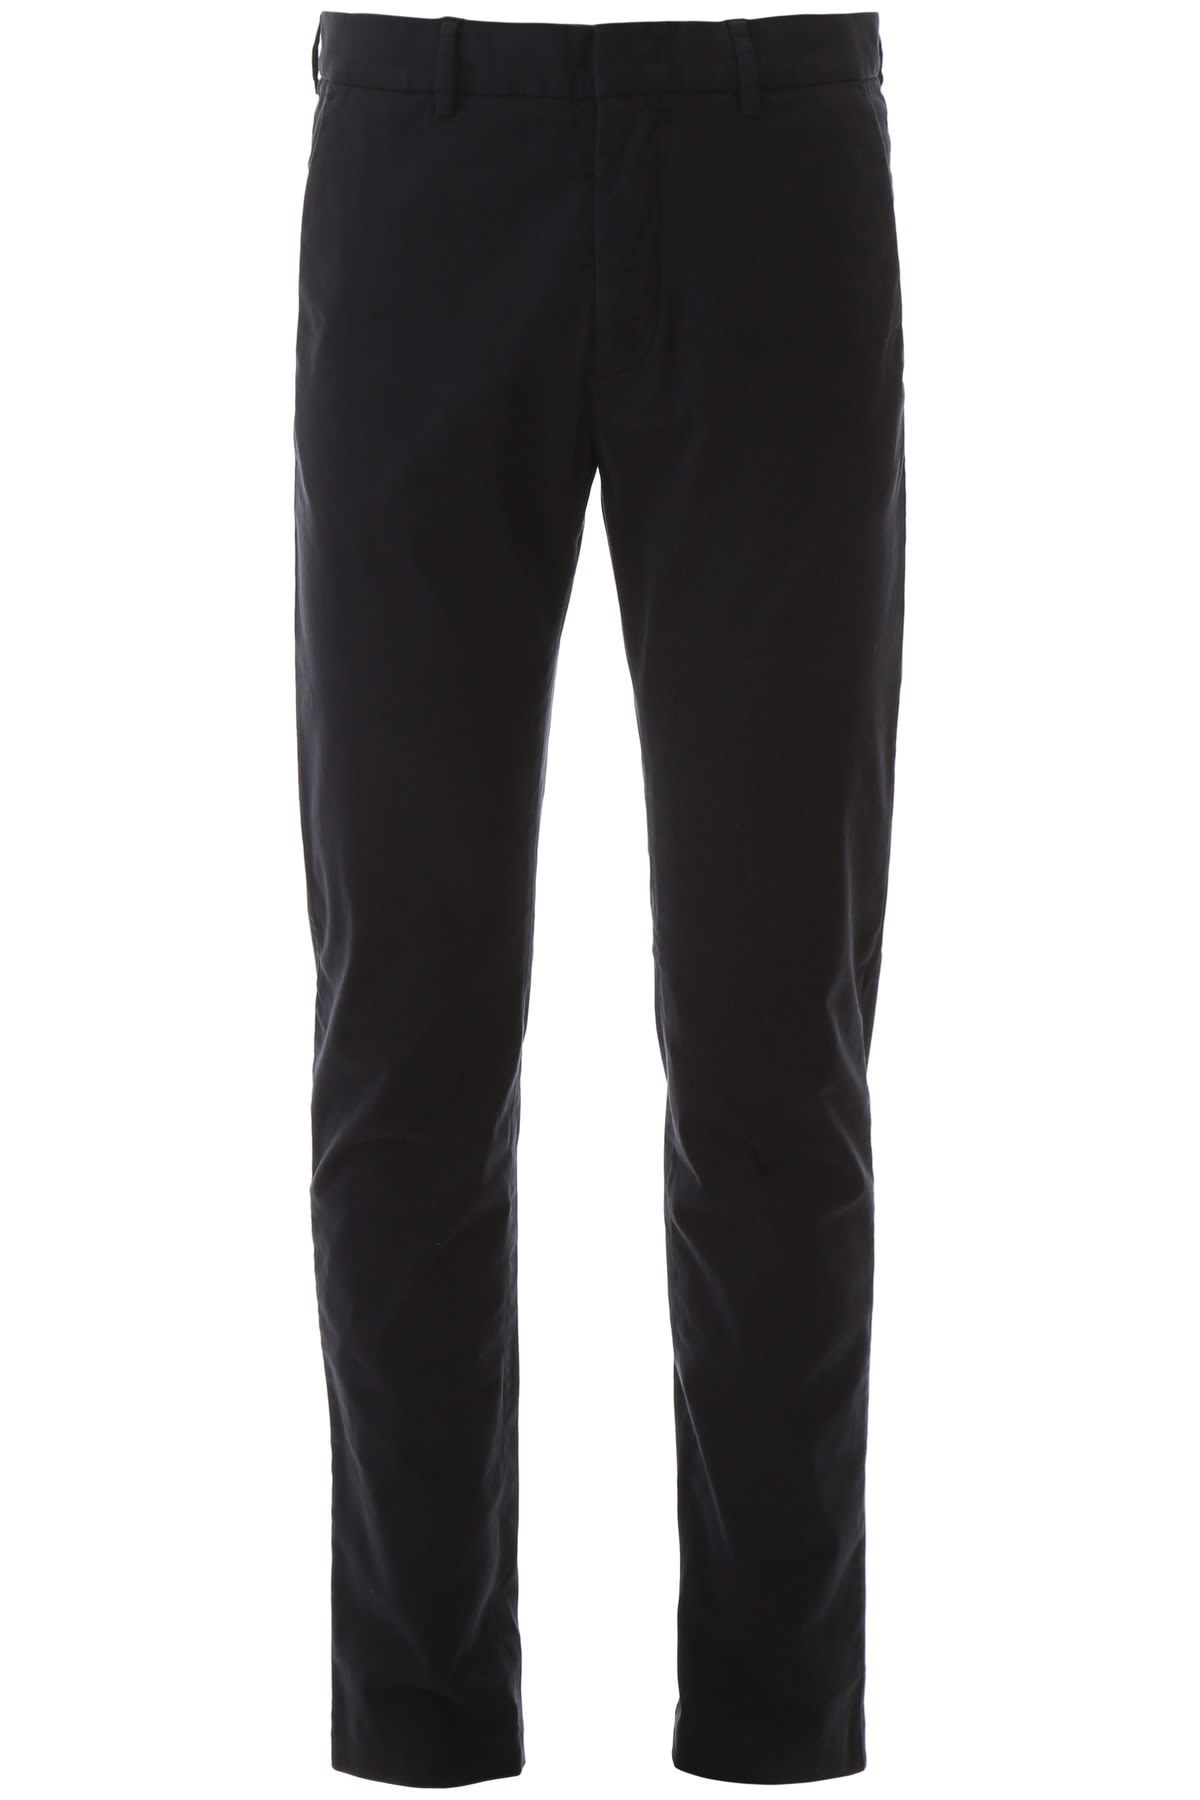 Z Zegna Chino Trousers